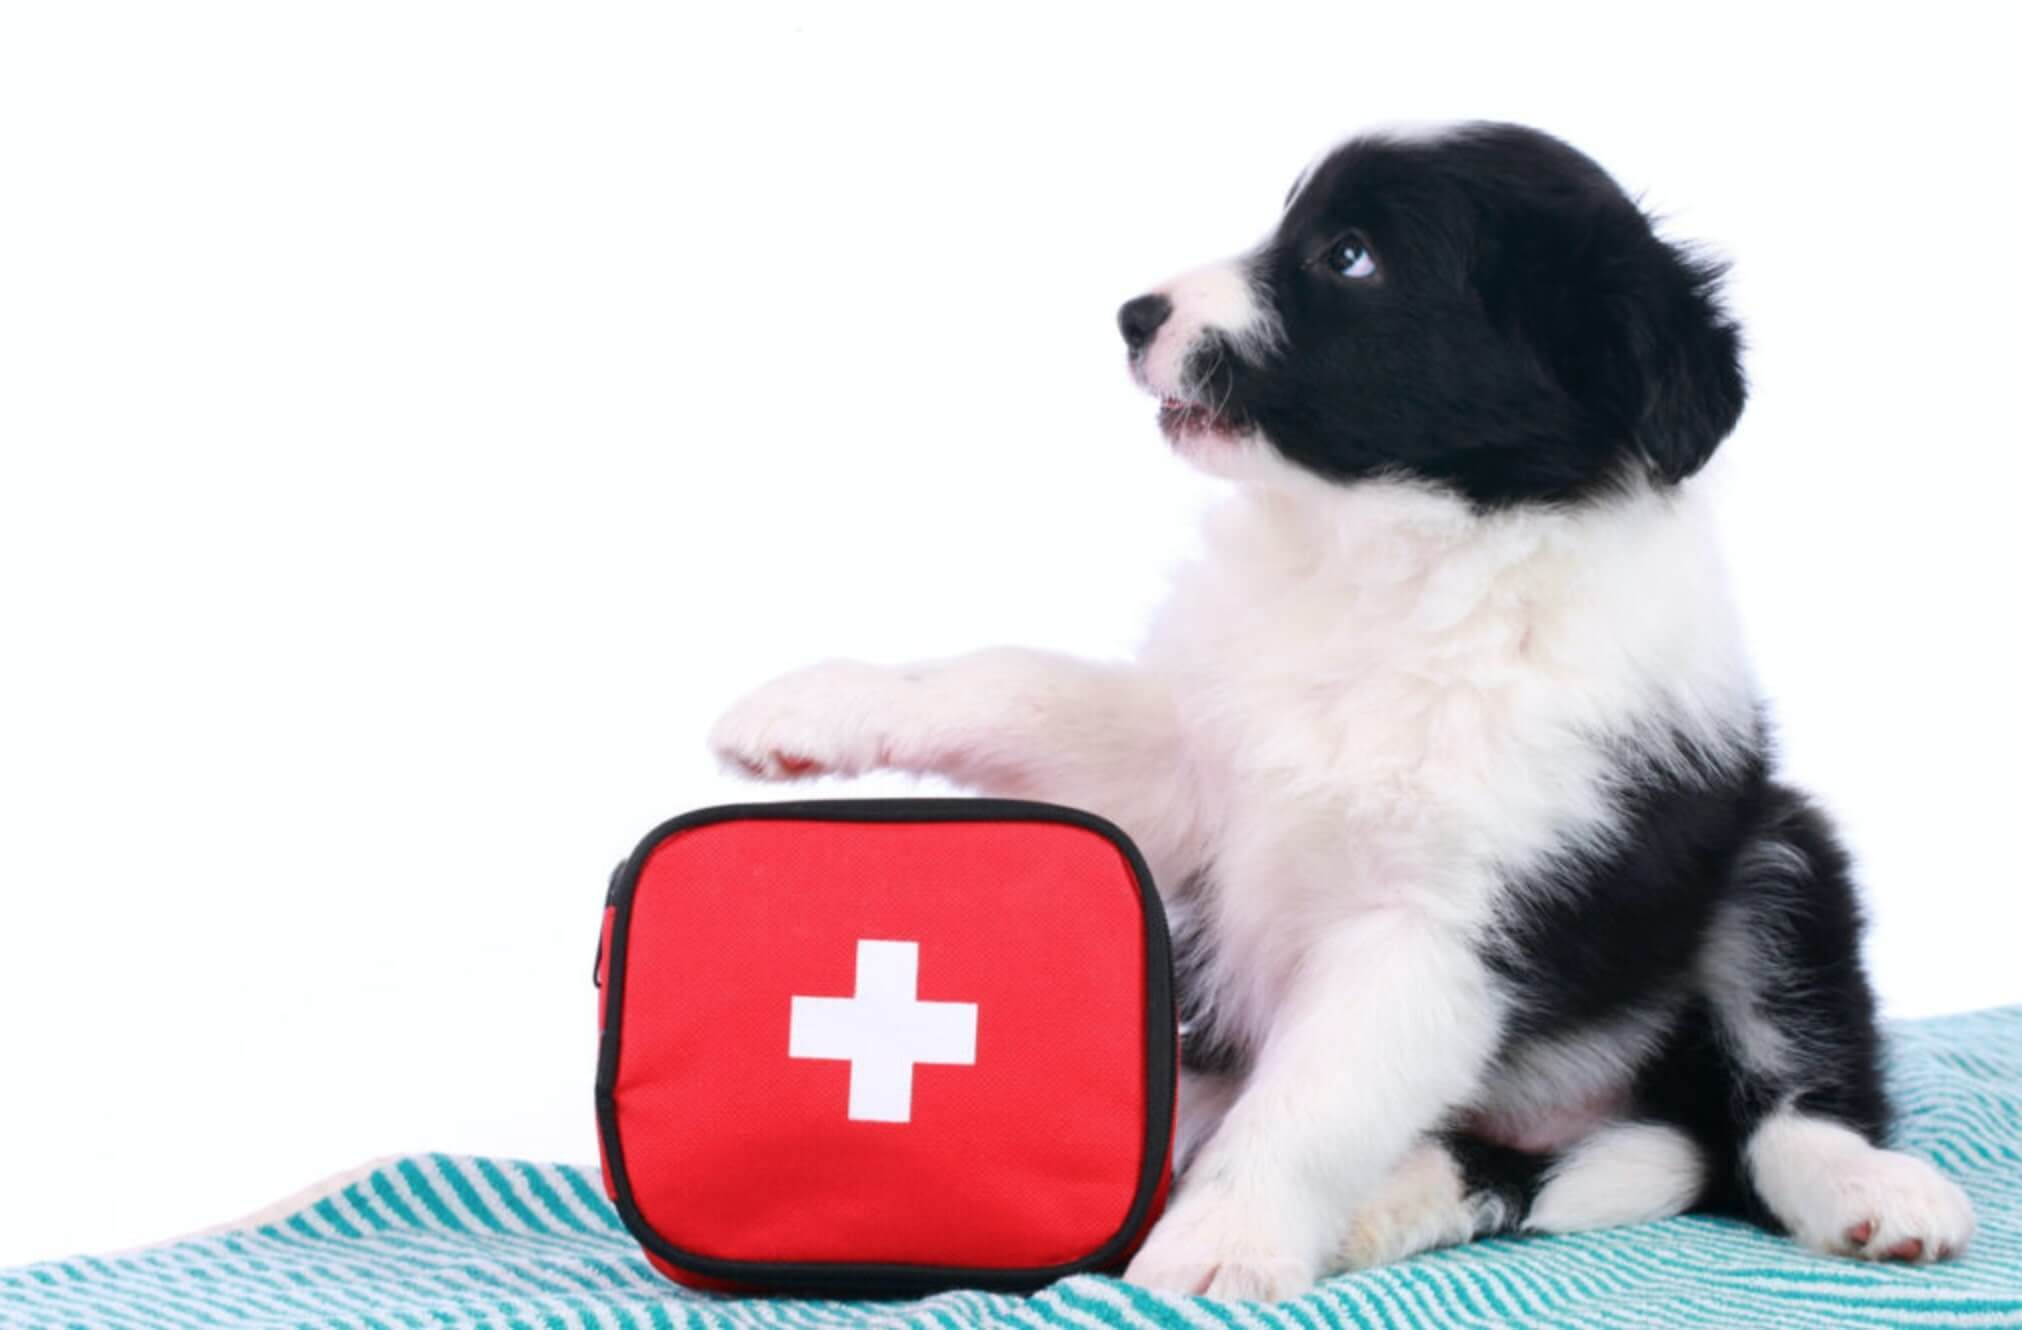 cane border collie con kit di primo soccorso